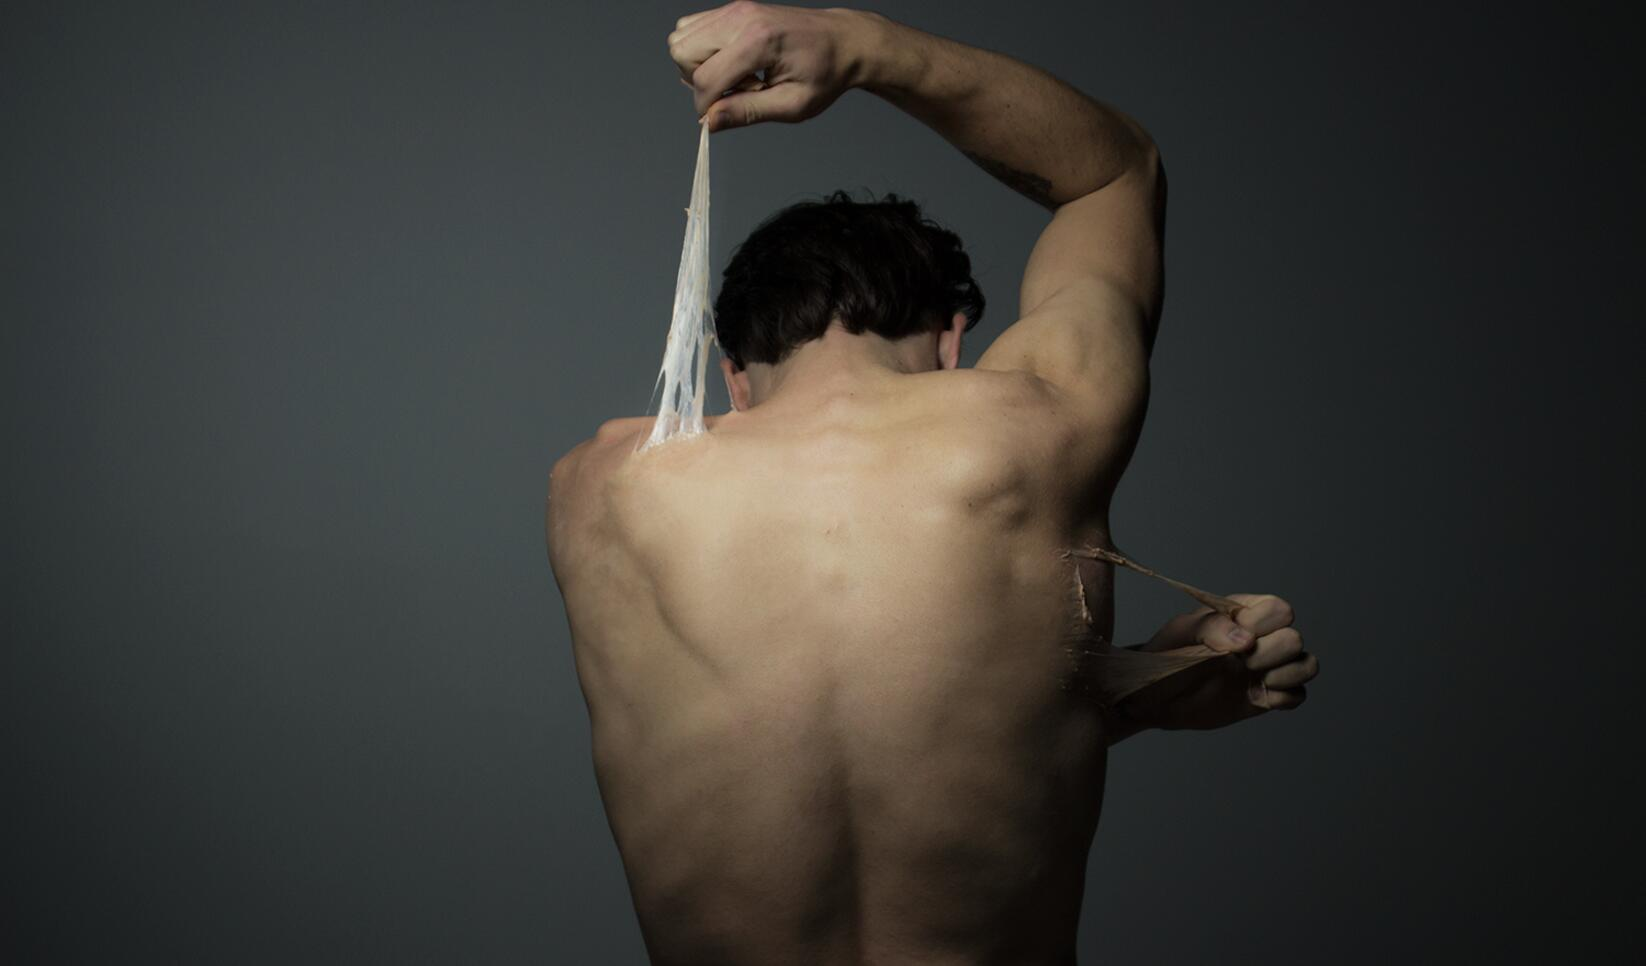 Dramatic portrait photograph of a figure pulling at their skin. ; Austin Eckstrom